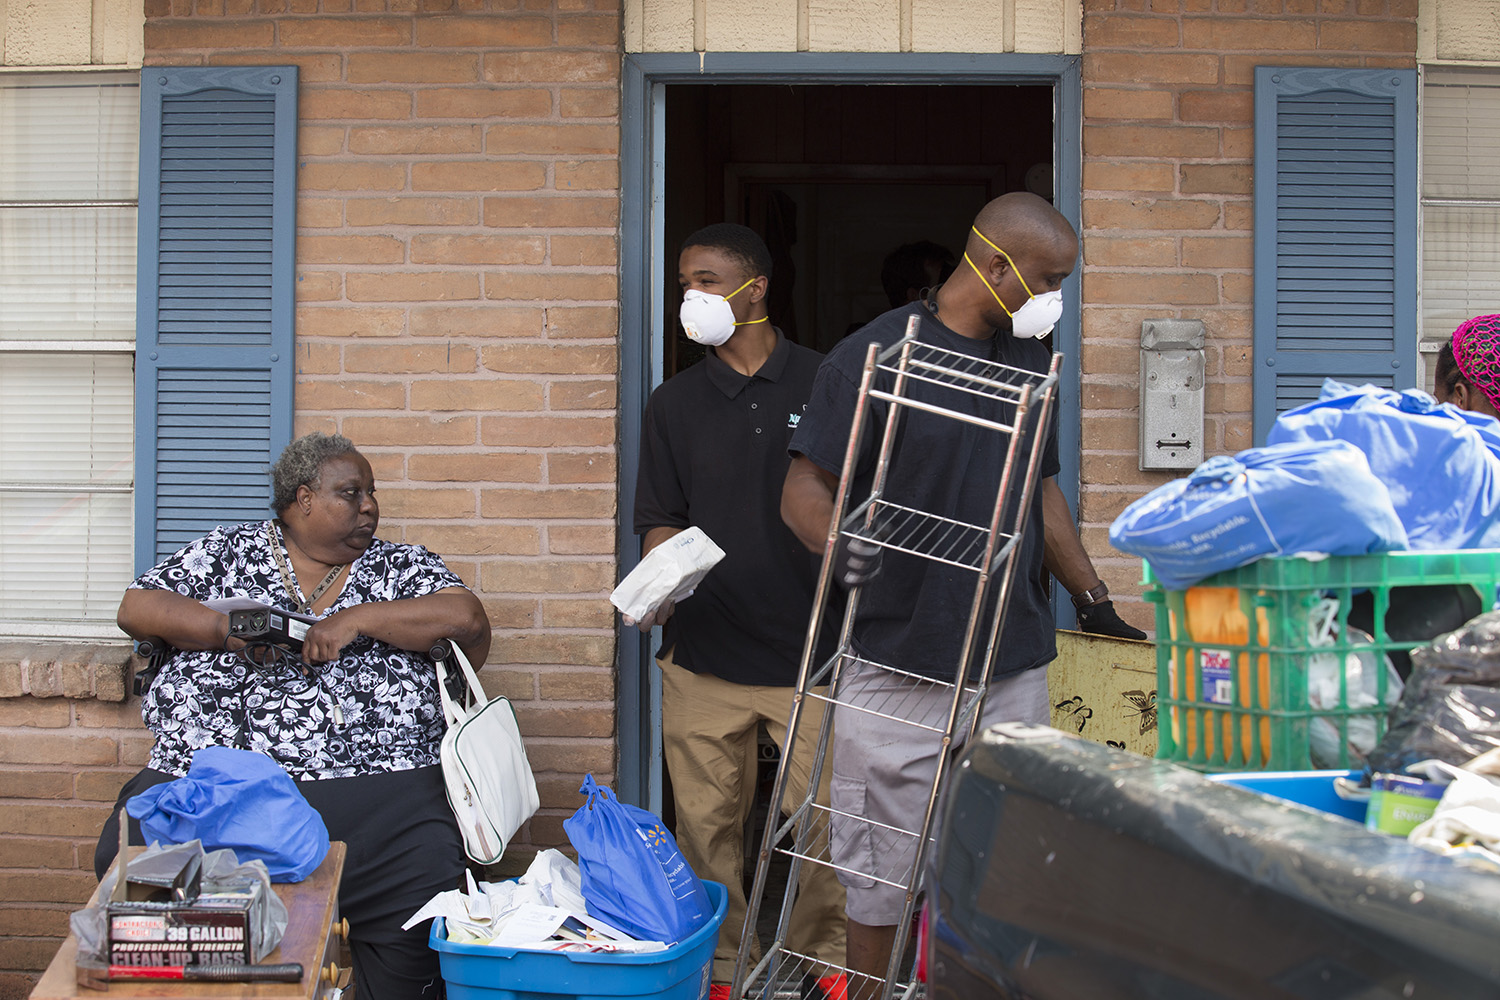 Marilyn Wilson, 61, watches as volunteers Jamal Stenson and his son Aahmad clean her flooded apartment out in the Kashmere Gardens neighborhood of Houston on Thursday, Aug. 31, 2017.